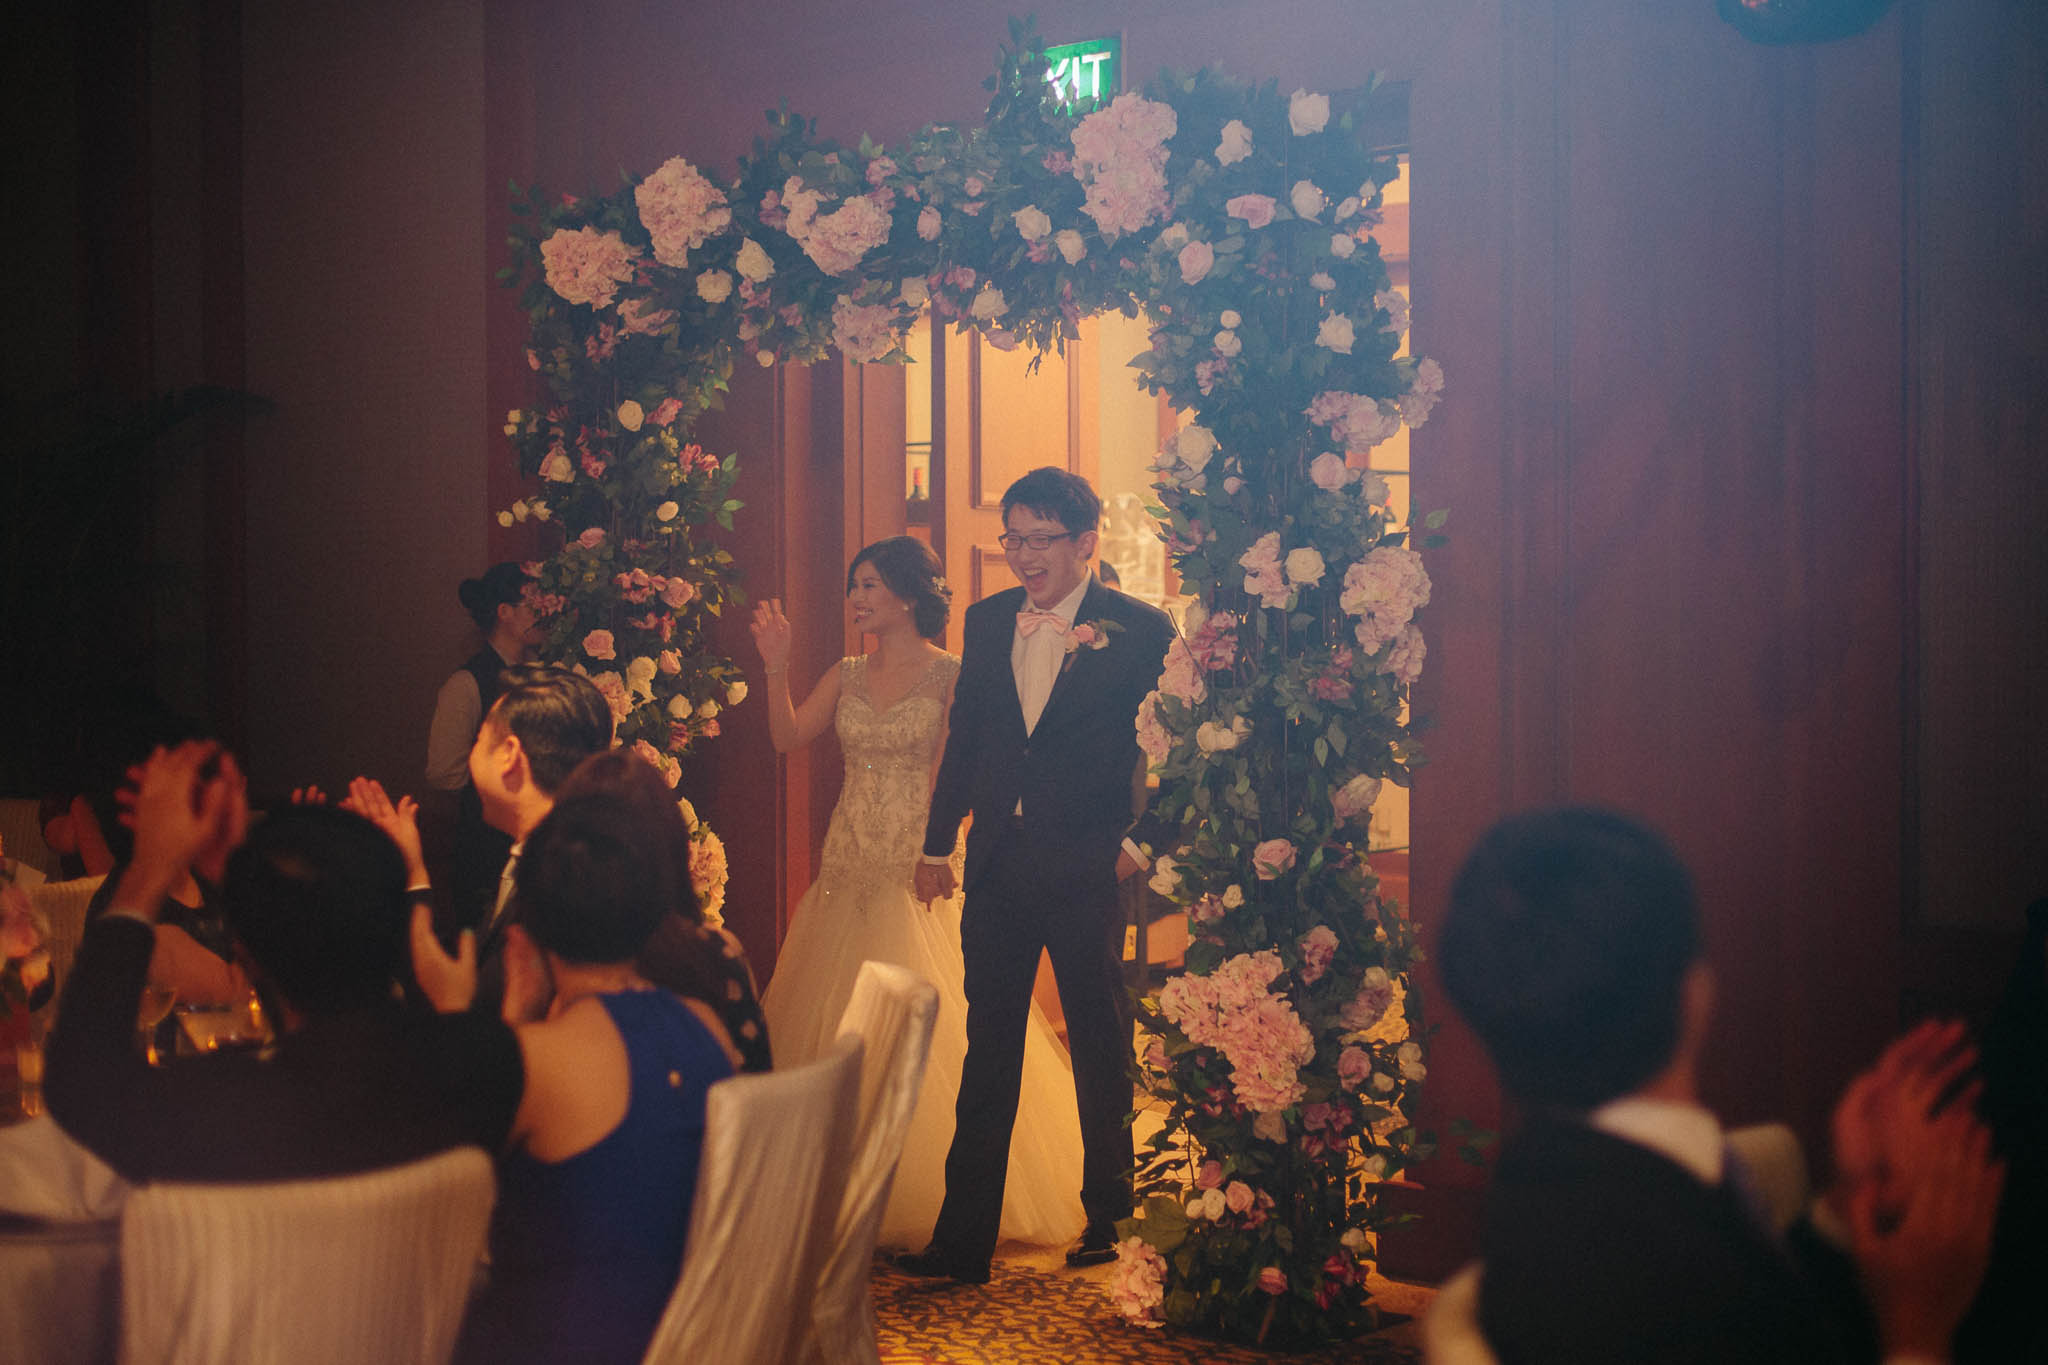 singapore-wedding-photographer-pre-wedding-ashley-sean-048.jpg